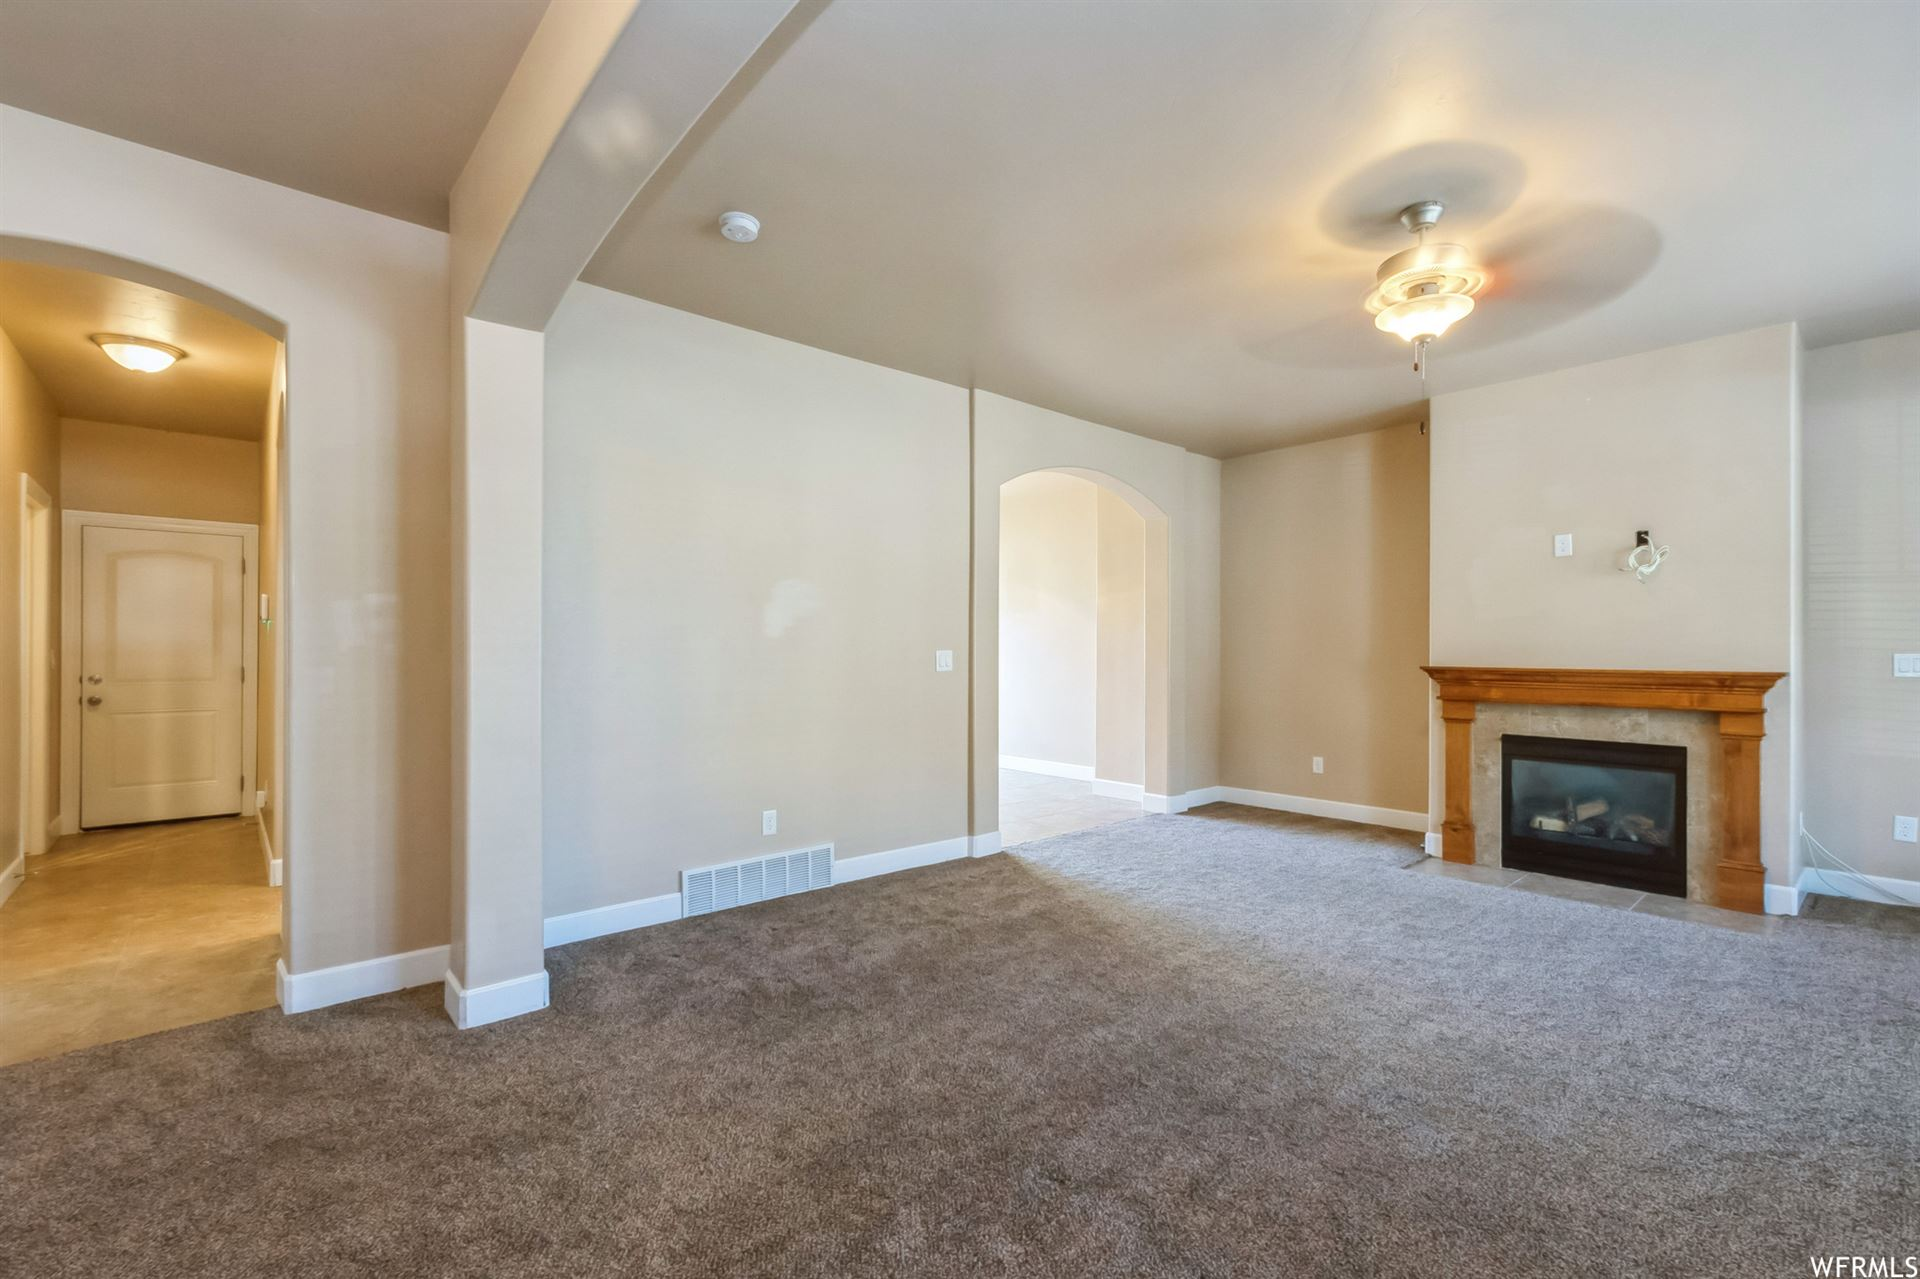 Photo of 5543 W PARKWAY WEST W DR, Highland, UT 84003 (MLS # 1729971)